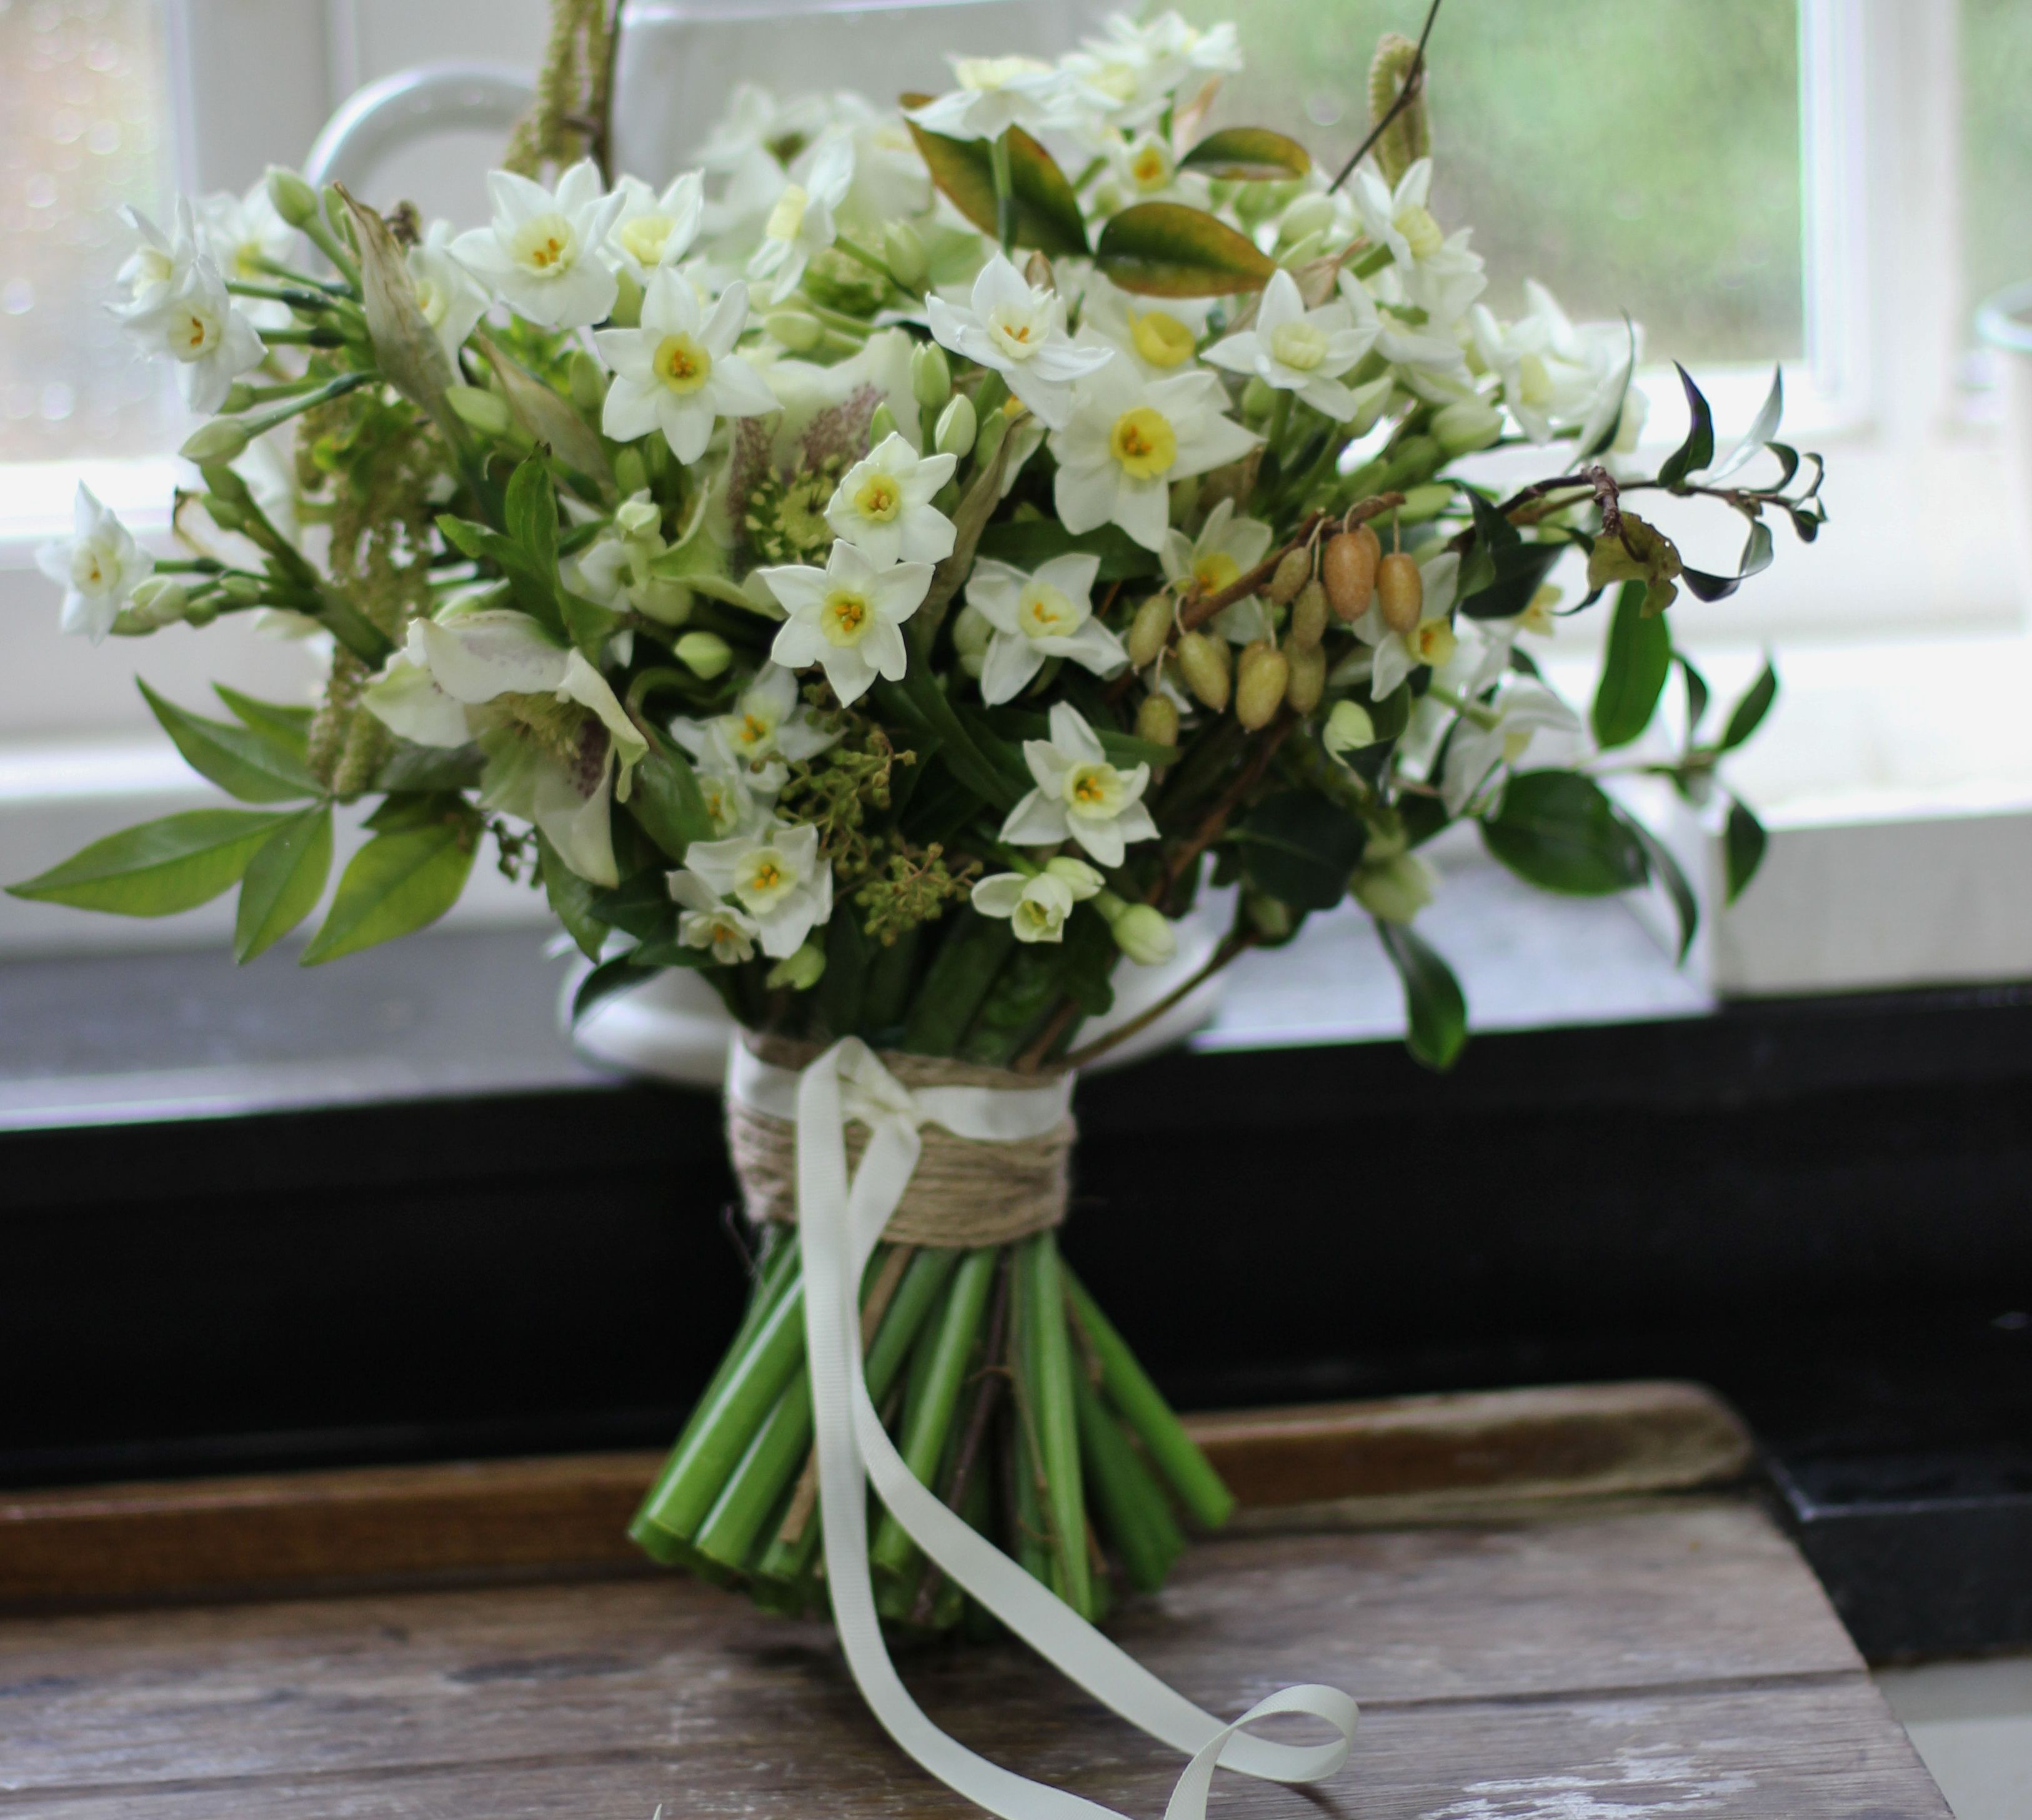 Lock Cottage Flowers Surrey UK 100 British Grown Bridal Bouquet Including Narcissus